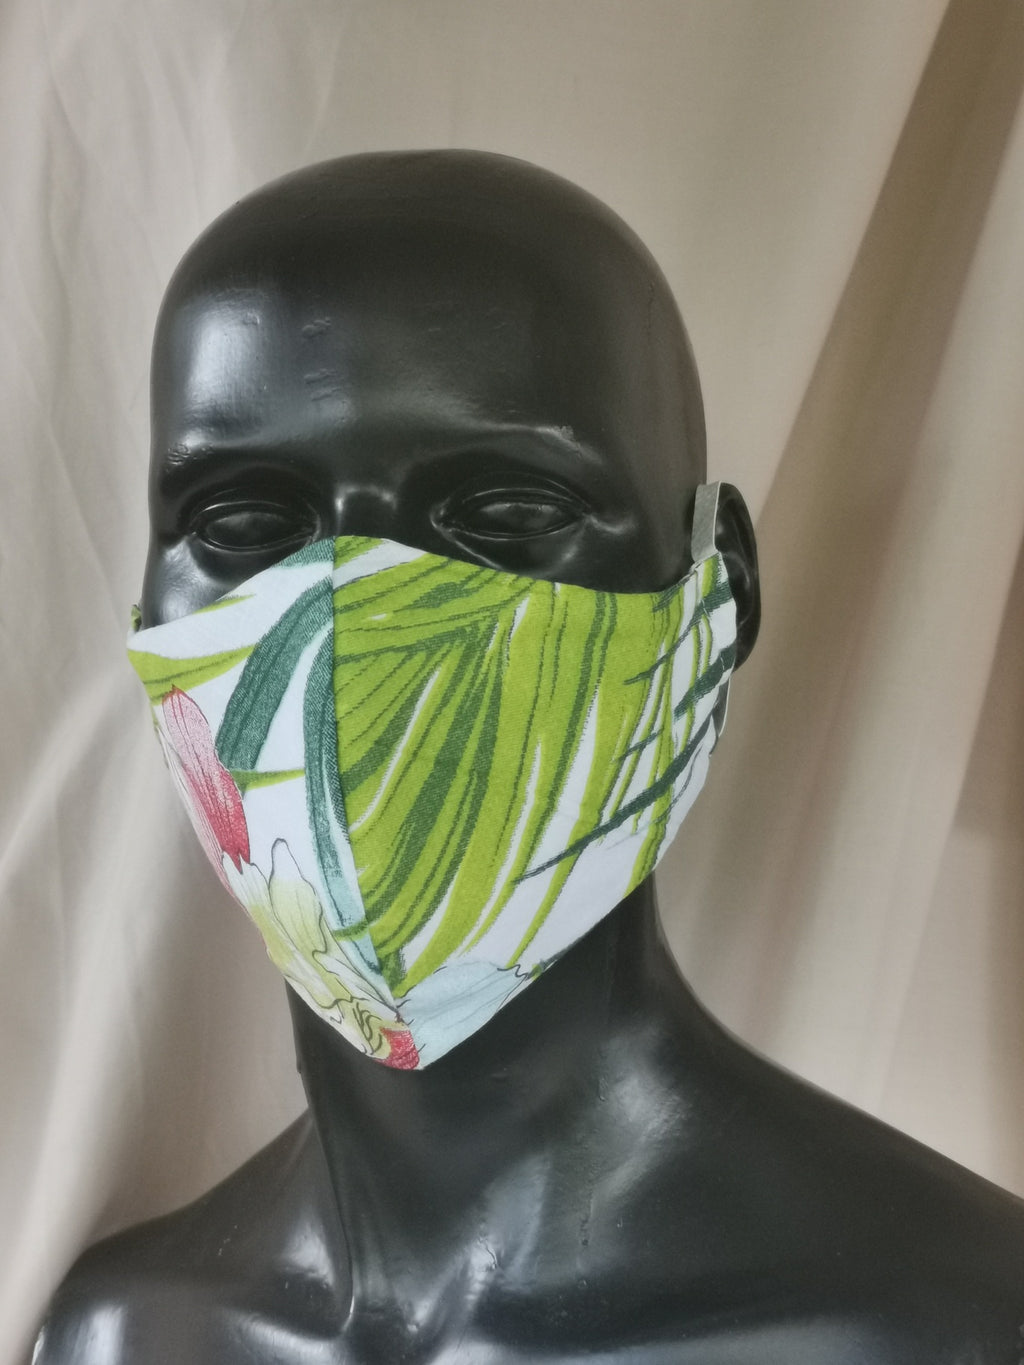 405 TYPE 2 Face mask - Palm Leaves, Adult Med & Large